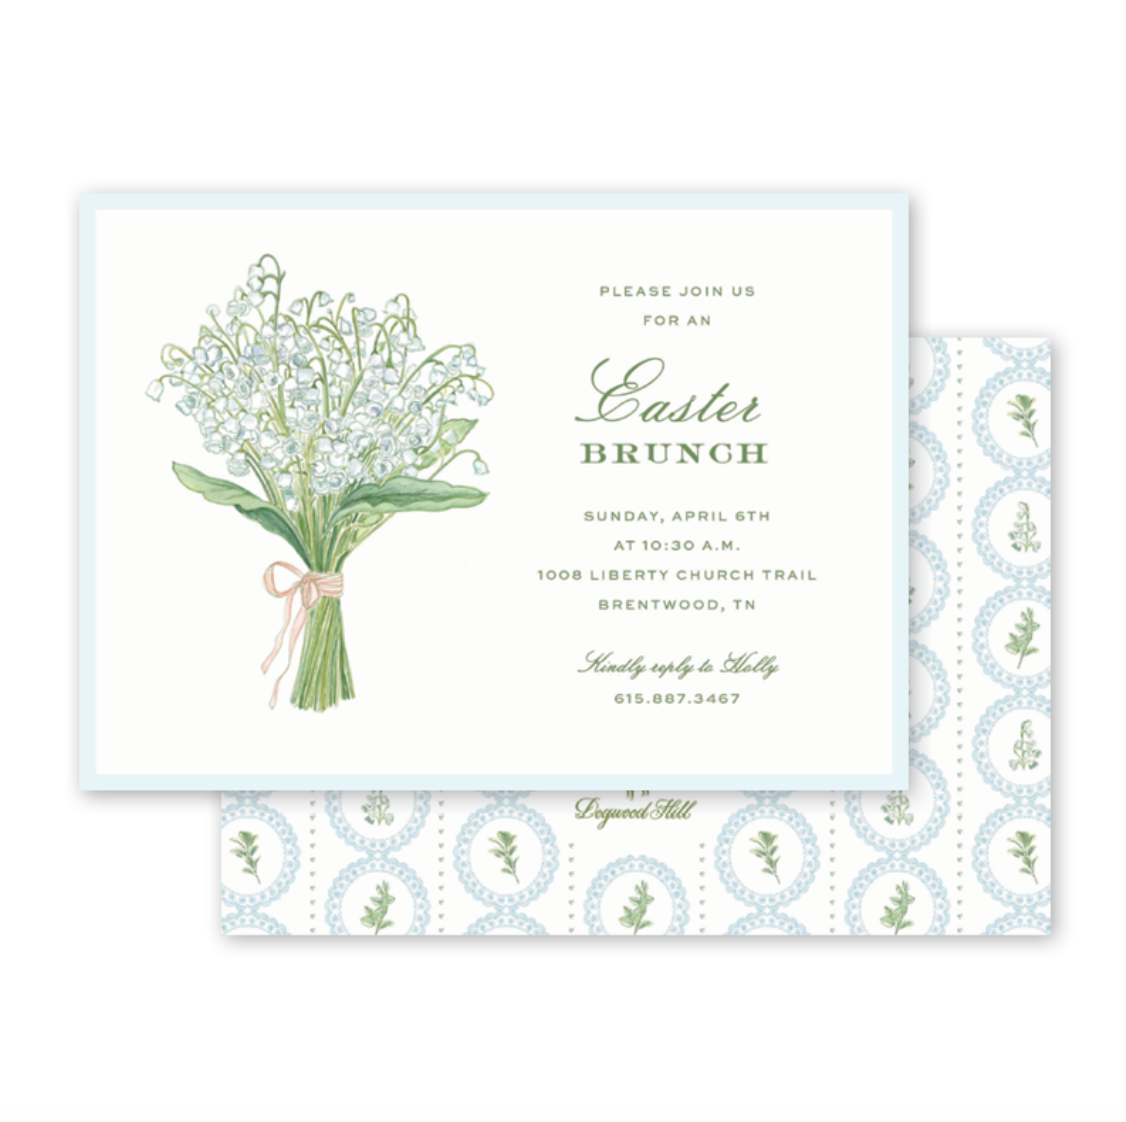 Lily of the Valley Easter Brunch Invite